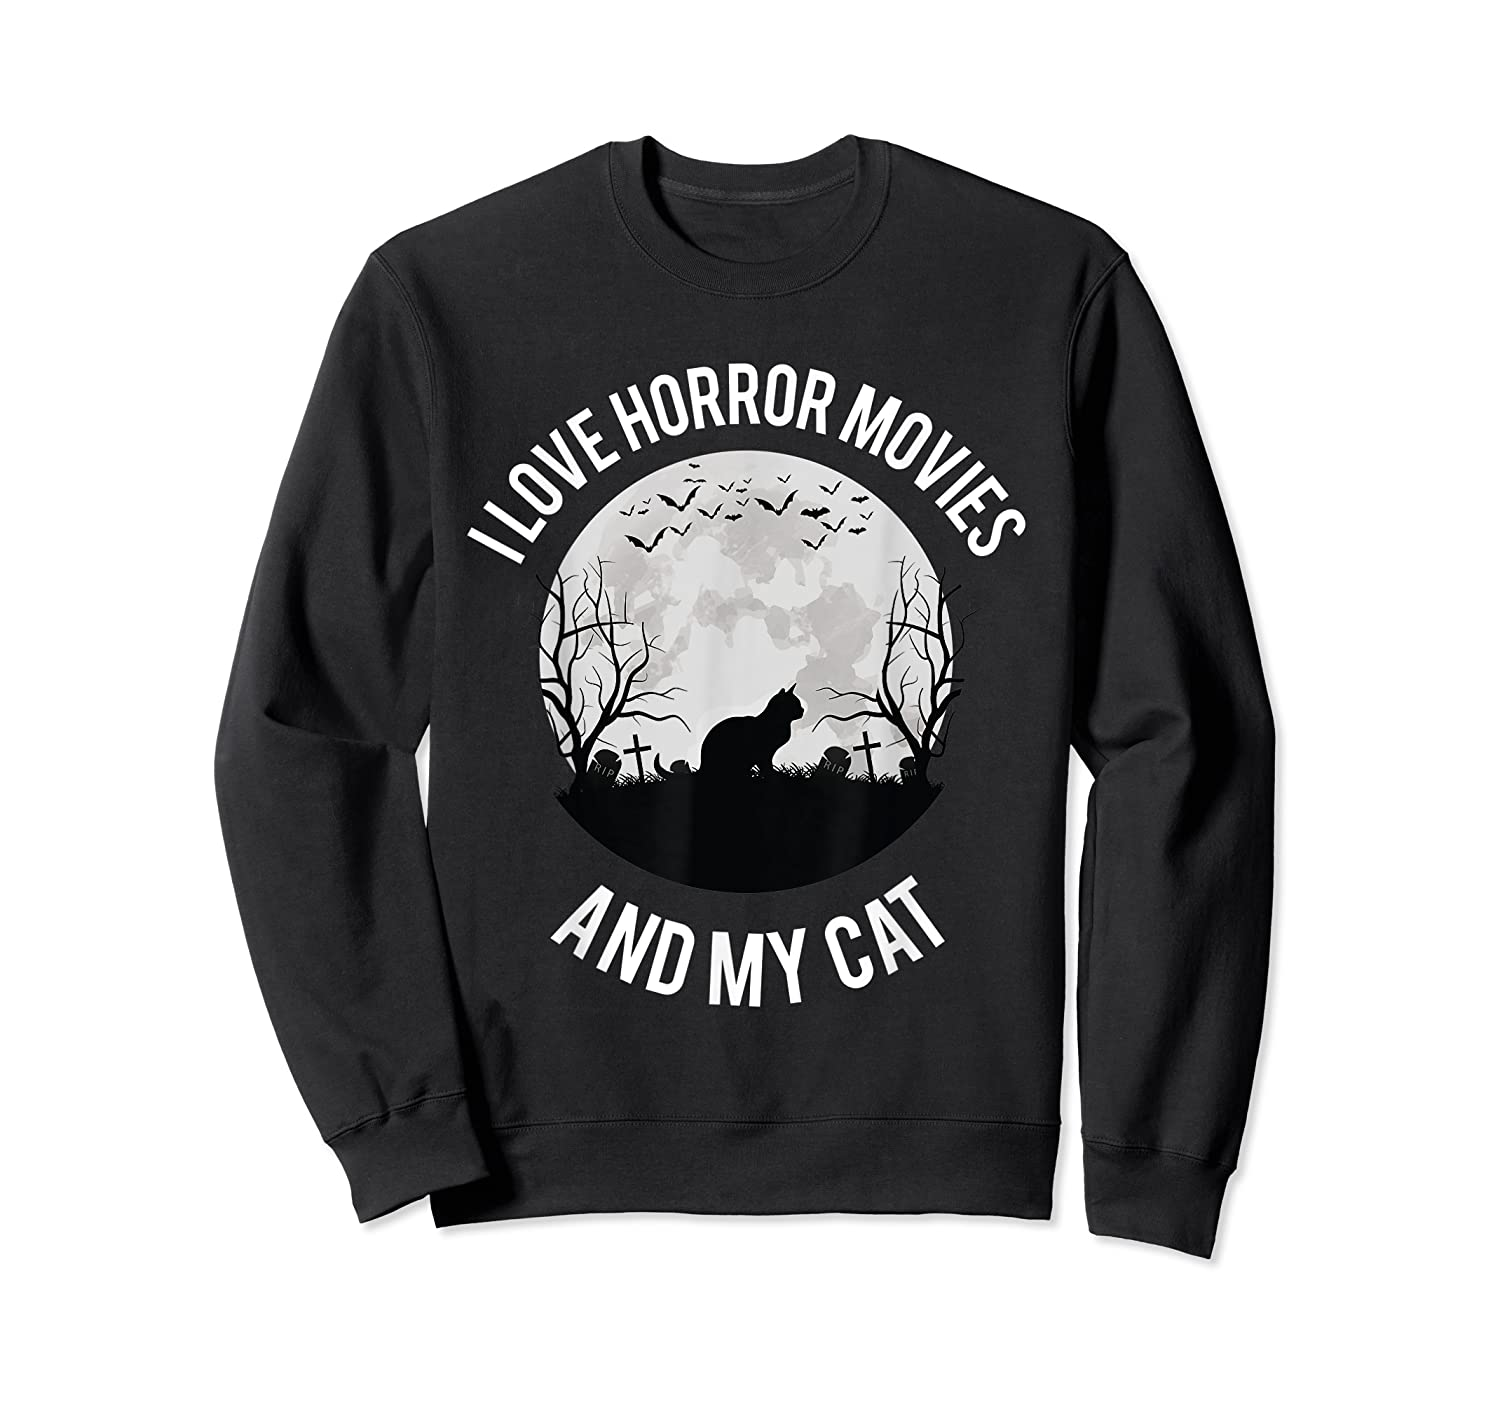 I Love Horror Movies And My Cat T Shirt Crewneck Sweater